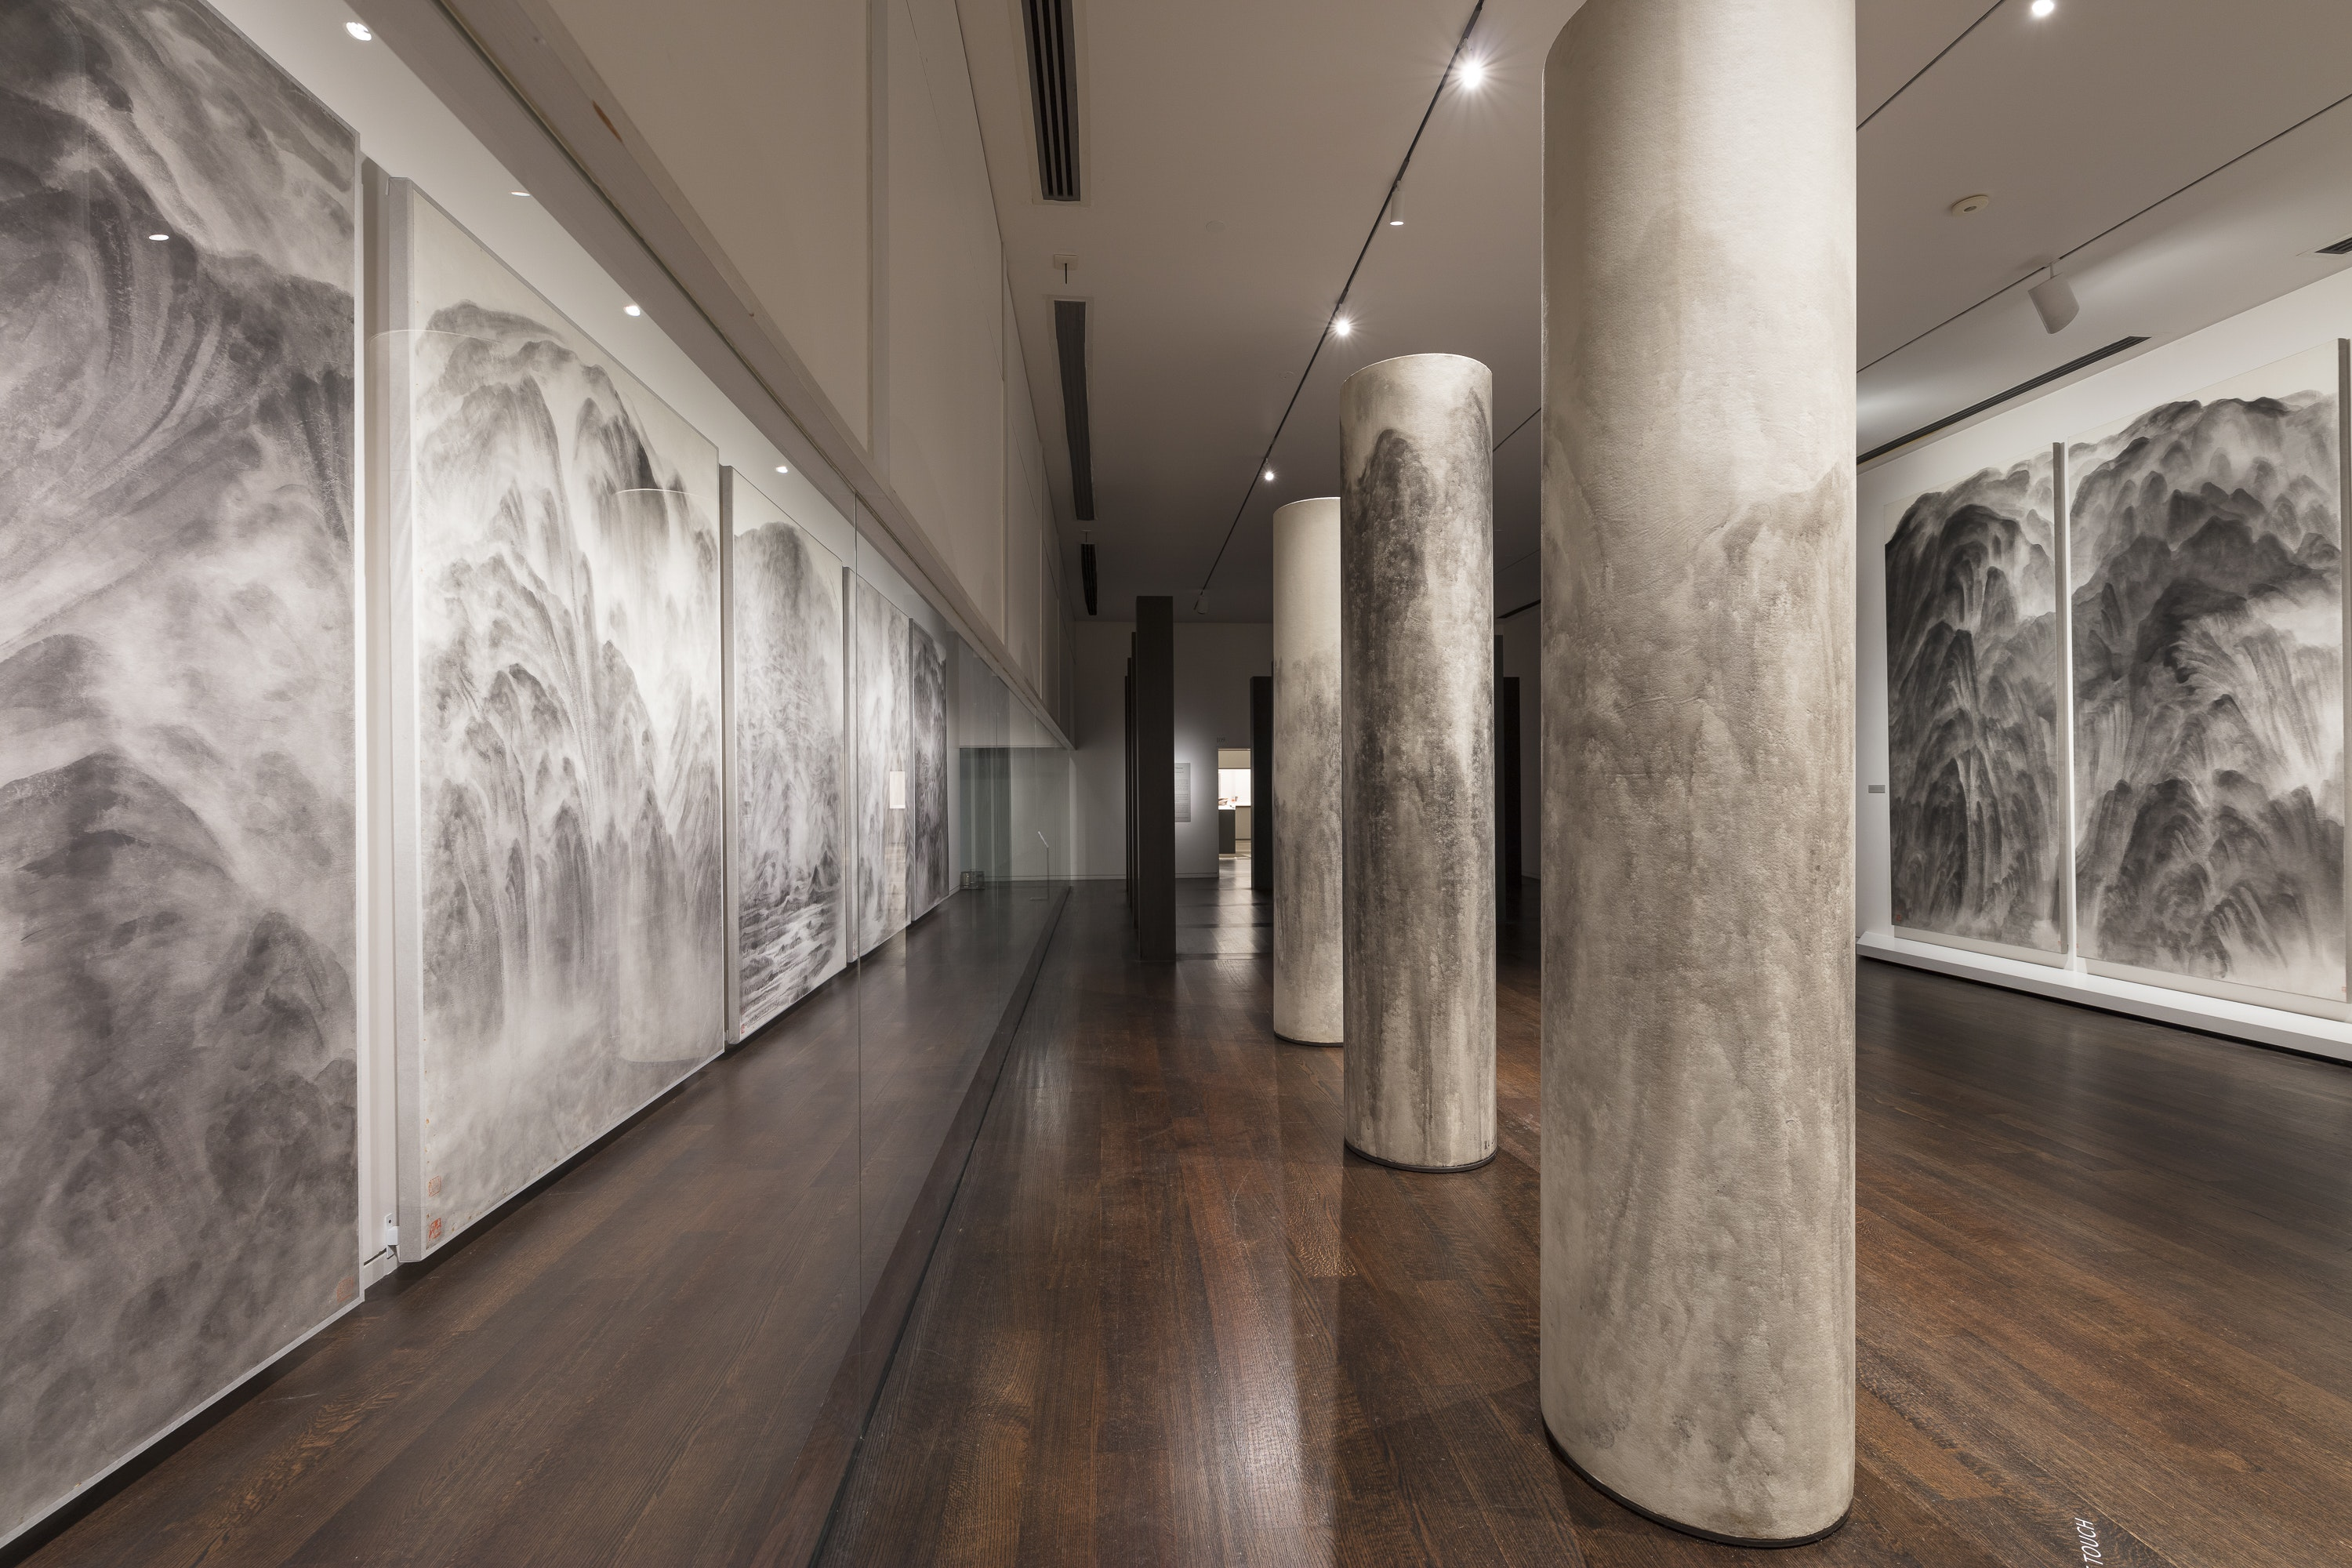 A picture of an installation of black and white panels and columns painted in black ink.